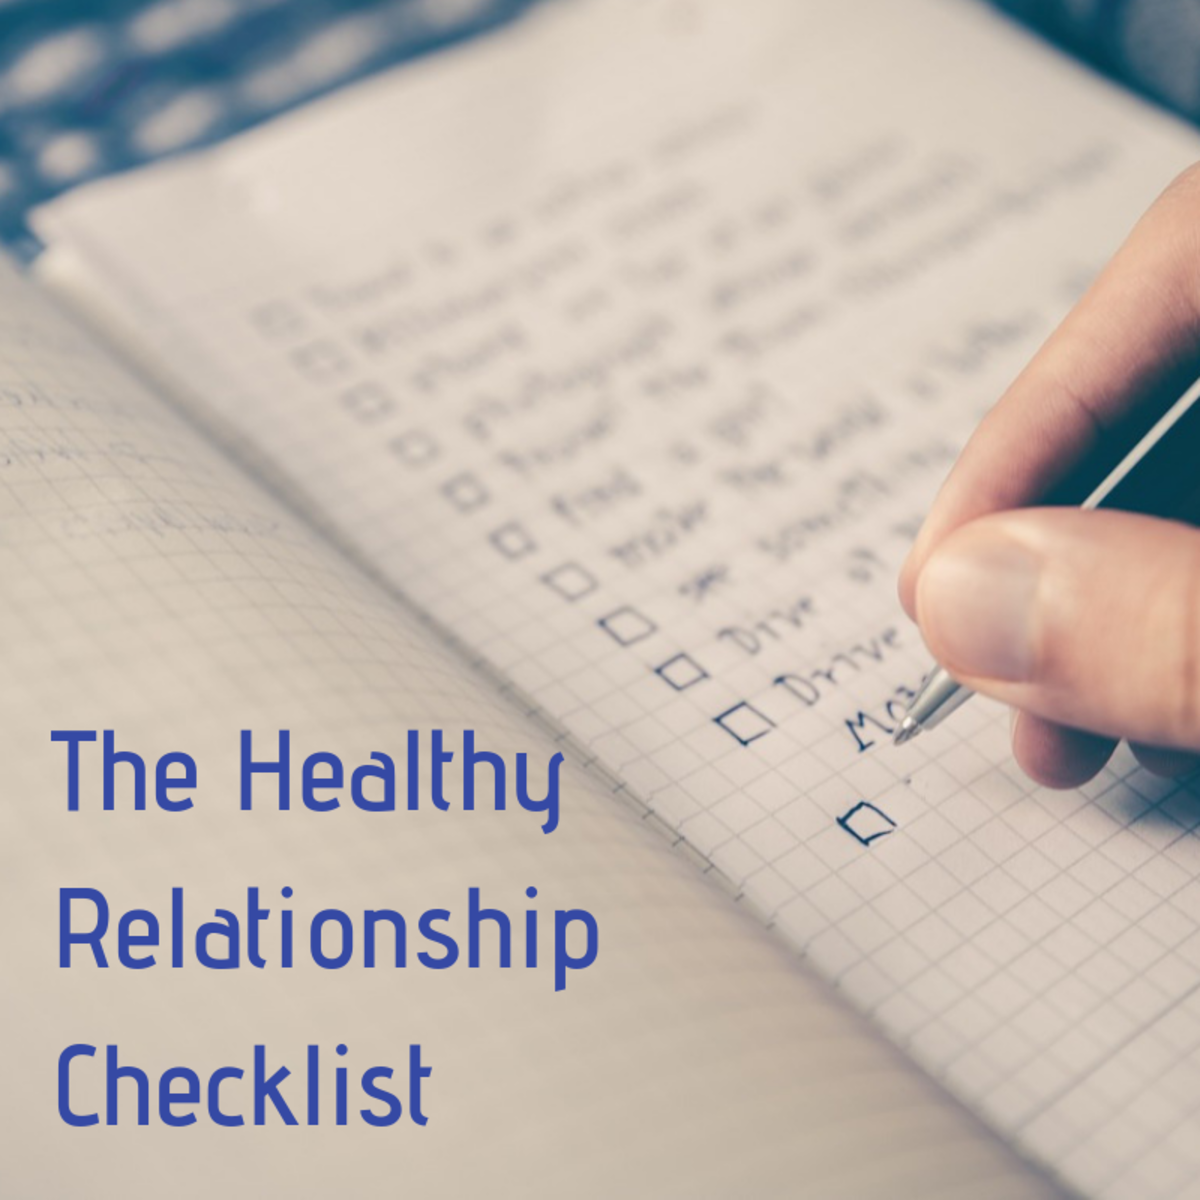 Should I Go or Should I Stay? The Ultimate Relationship Checklist